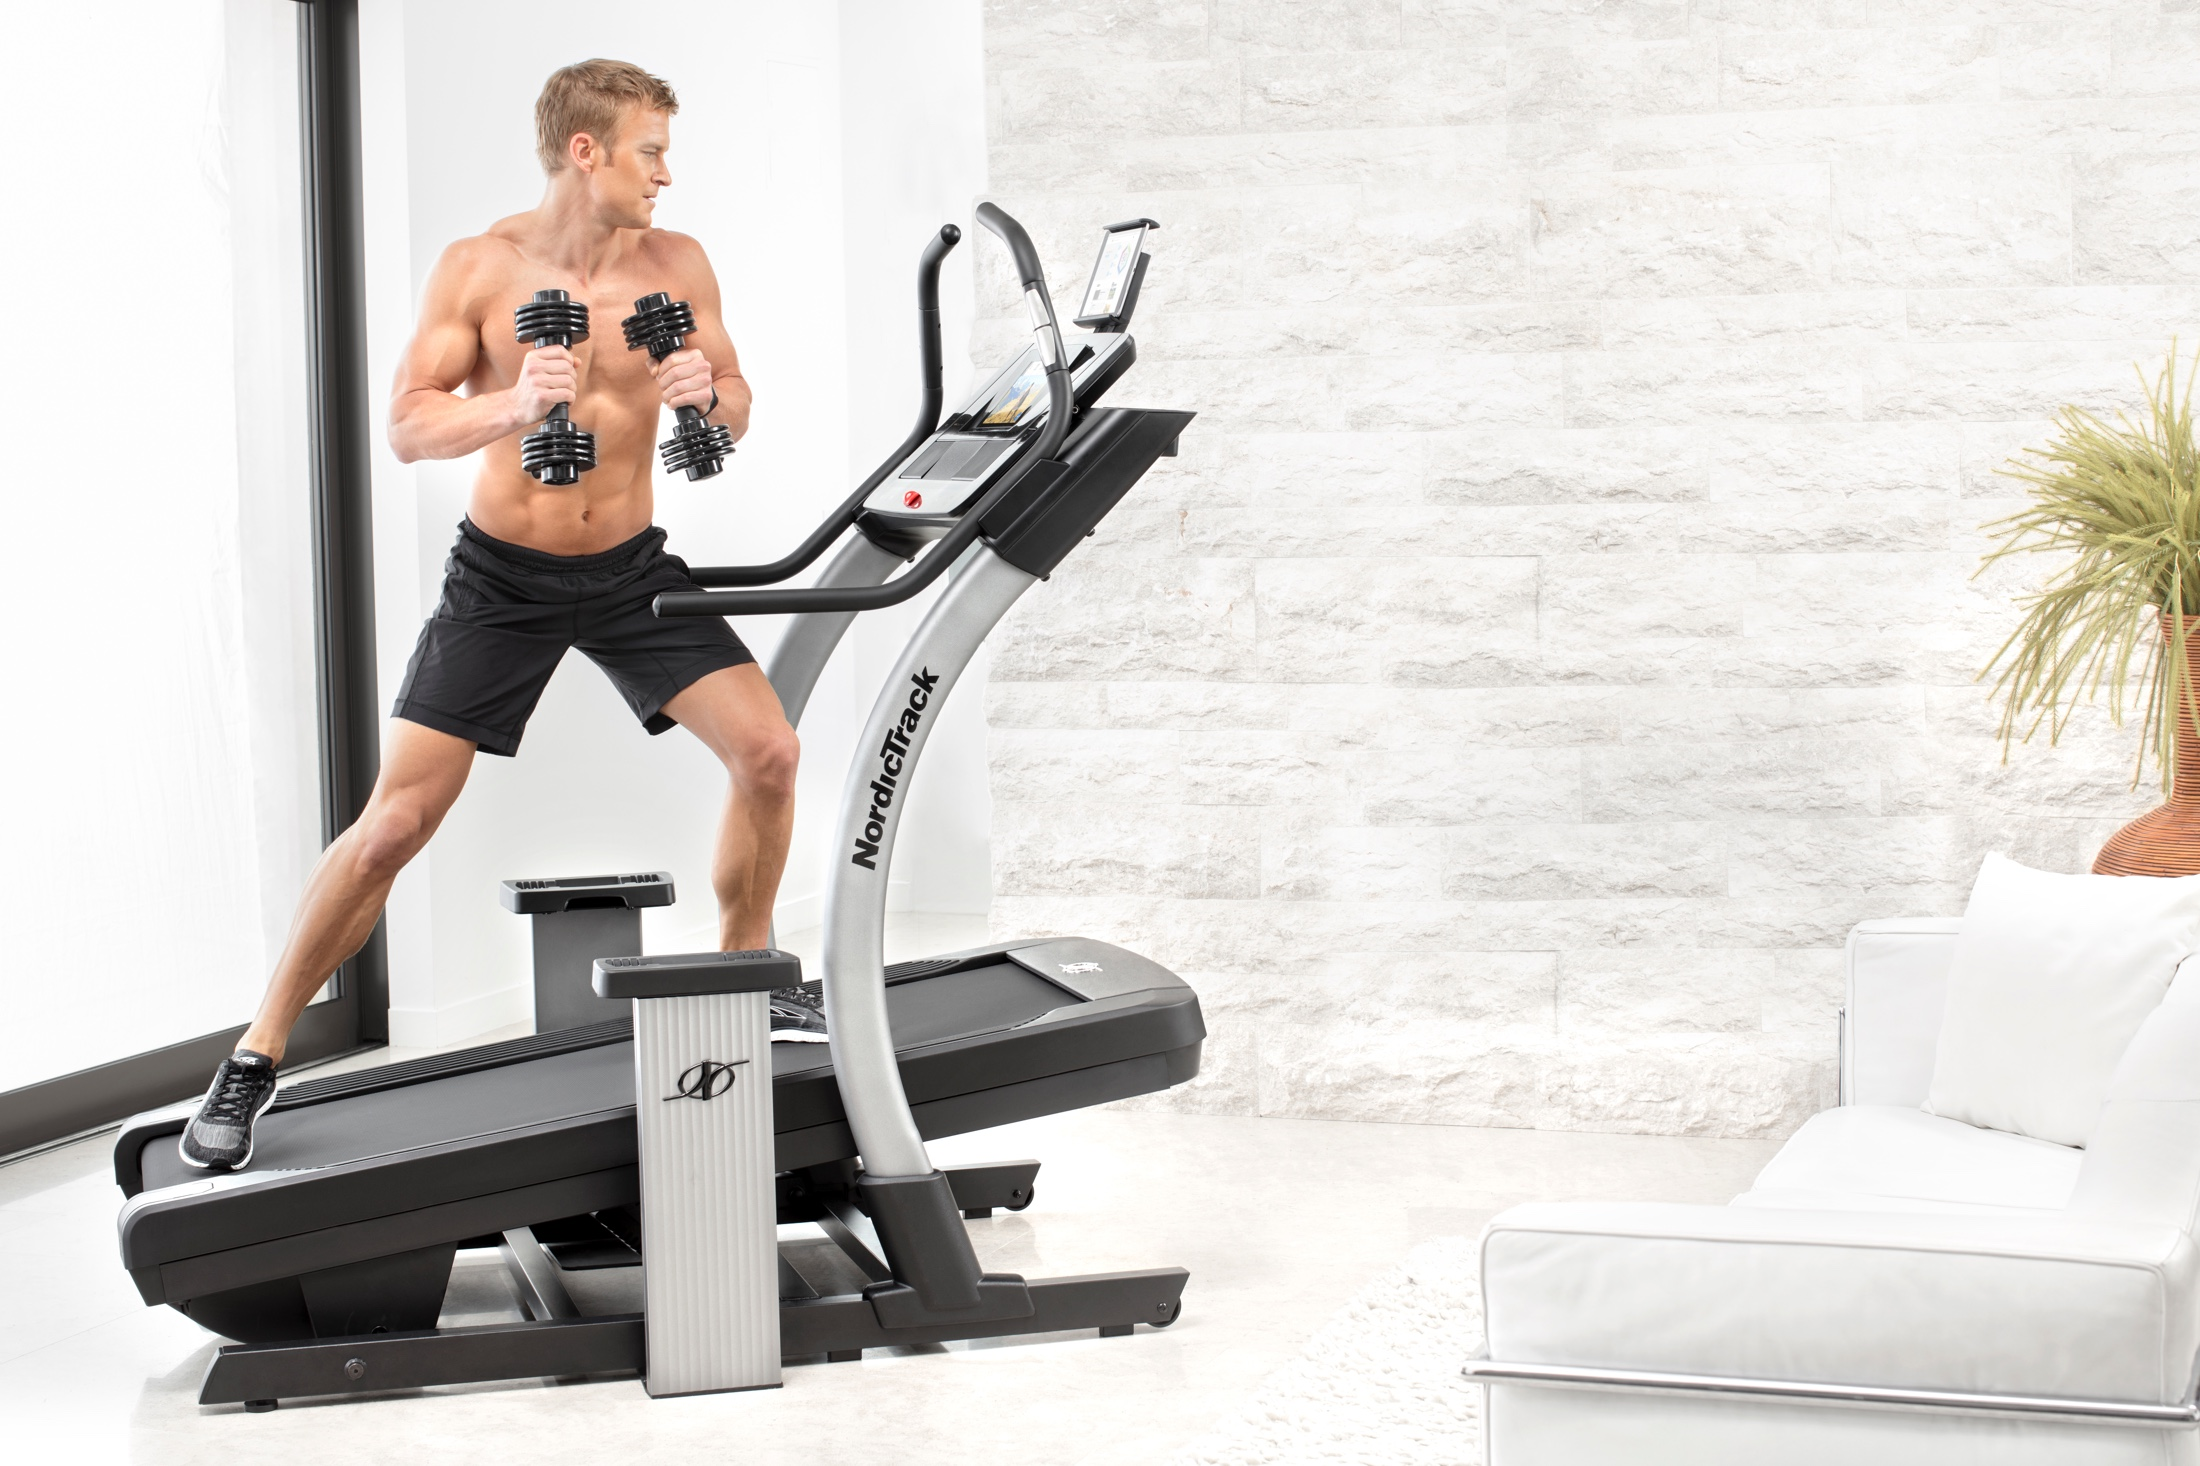 NordicTrack X11i Incline Trainer gallery image 4